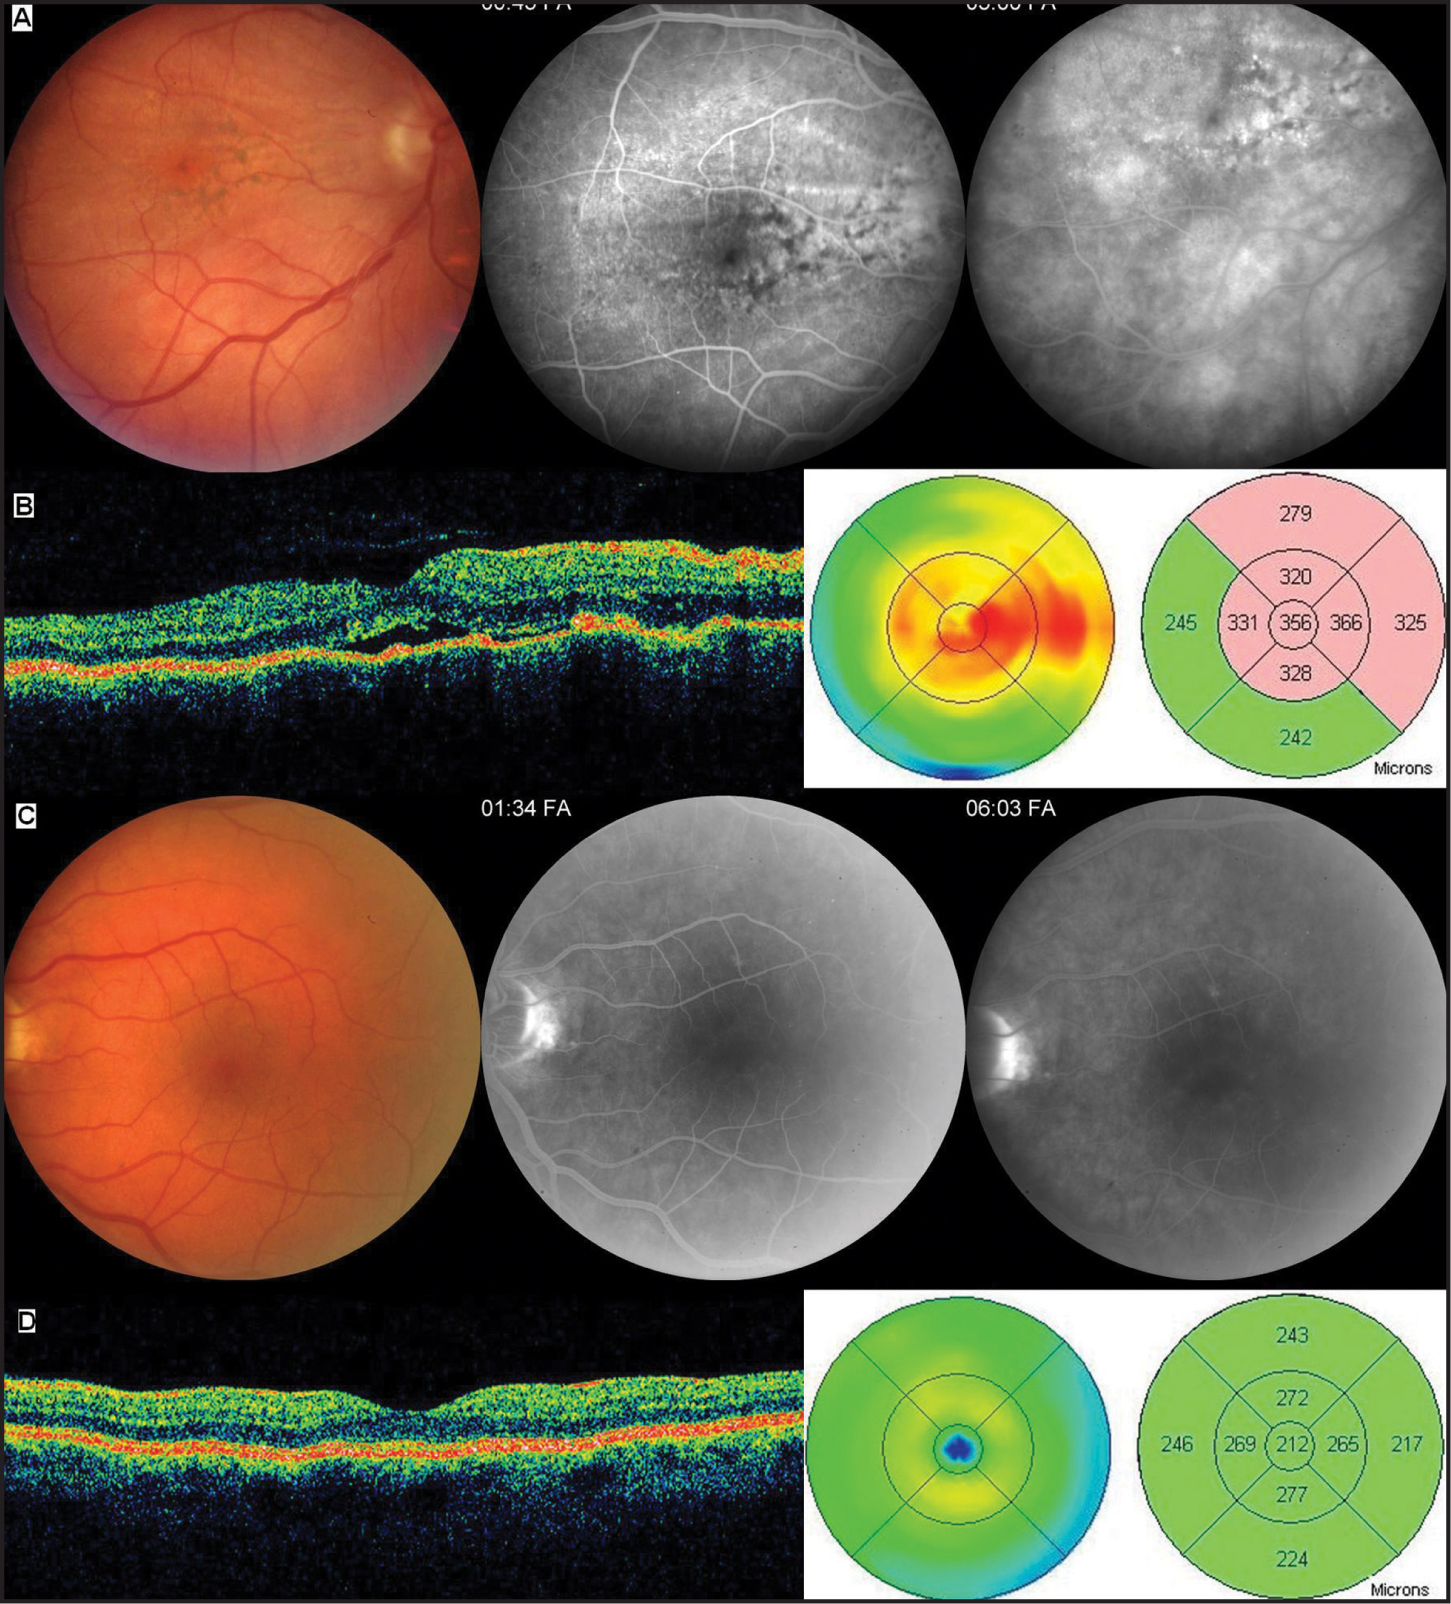 (A) Right Eye at Initial Presentation. Fundus Photograph Illustrates Deep Orange-Yellow Protruding Lesions at the Inferior Temporal Arcade and Multiple Large Retinal Pigment Epithelium (RPE) Clumping Around the Fovea and Chorioretinal Folds Extending Periphery Starting from the Optic Disc (left). RPE Clumping and Chorioretinal Folds Were Noticed More Easily at the Early Phase of Fluorescein Angiography (FA) with Pinpoint Hyperfluorescences Surrounding the Fovea (middle). In the Late Phase of FA, Oozing of Fluorescein Was Noticed at the Inferior Temporal Arcade, Which Corresponds to the Lesion Site (right). (B) Optical Coherence Tomography (OCT) and Thickness Map of the Right Eye at Initial Presentation. On the OCT, Localized Subretinal Fluid and Retinal Thickening Surrounding the Fovea Were Noticed. RPE Contour Had a Mild Undulating Course with Localized RPE Detachment. Foveal Contour Was Preserved. (C) Left Eye at Initial Presentation. Fundus Photograph and Mid and Late Phases of FA Revealed Normal Macula with Normal Vasculature. (D) OCT and Thickness Map of the Left Eye at Initial Presentation. There Were No Abnormalities in the Left Eye.